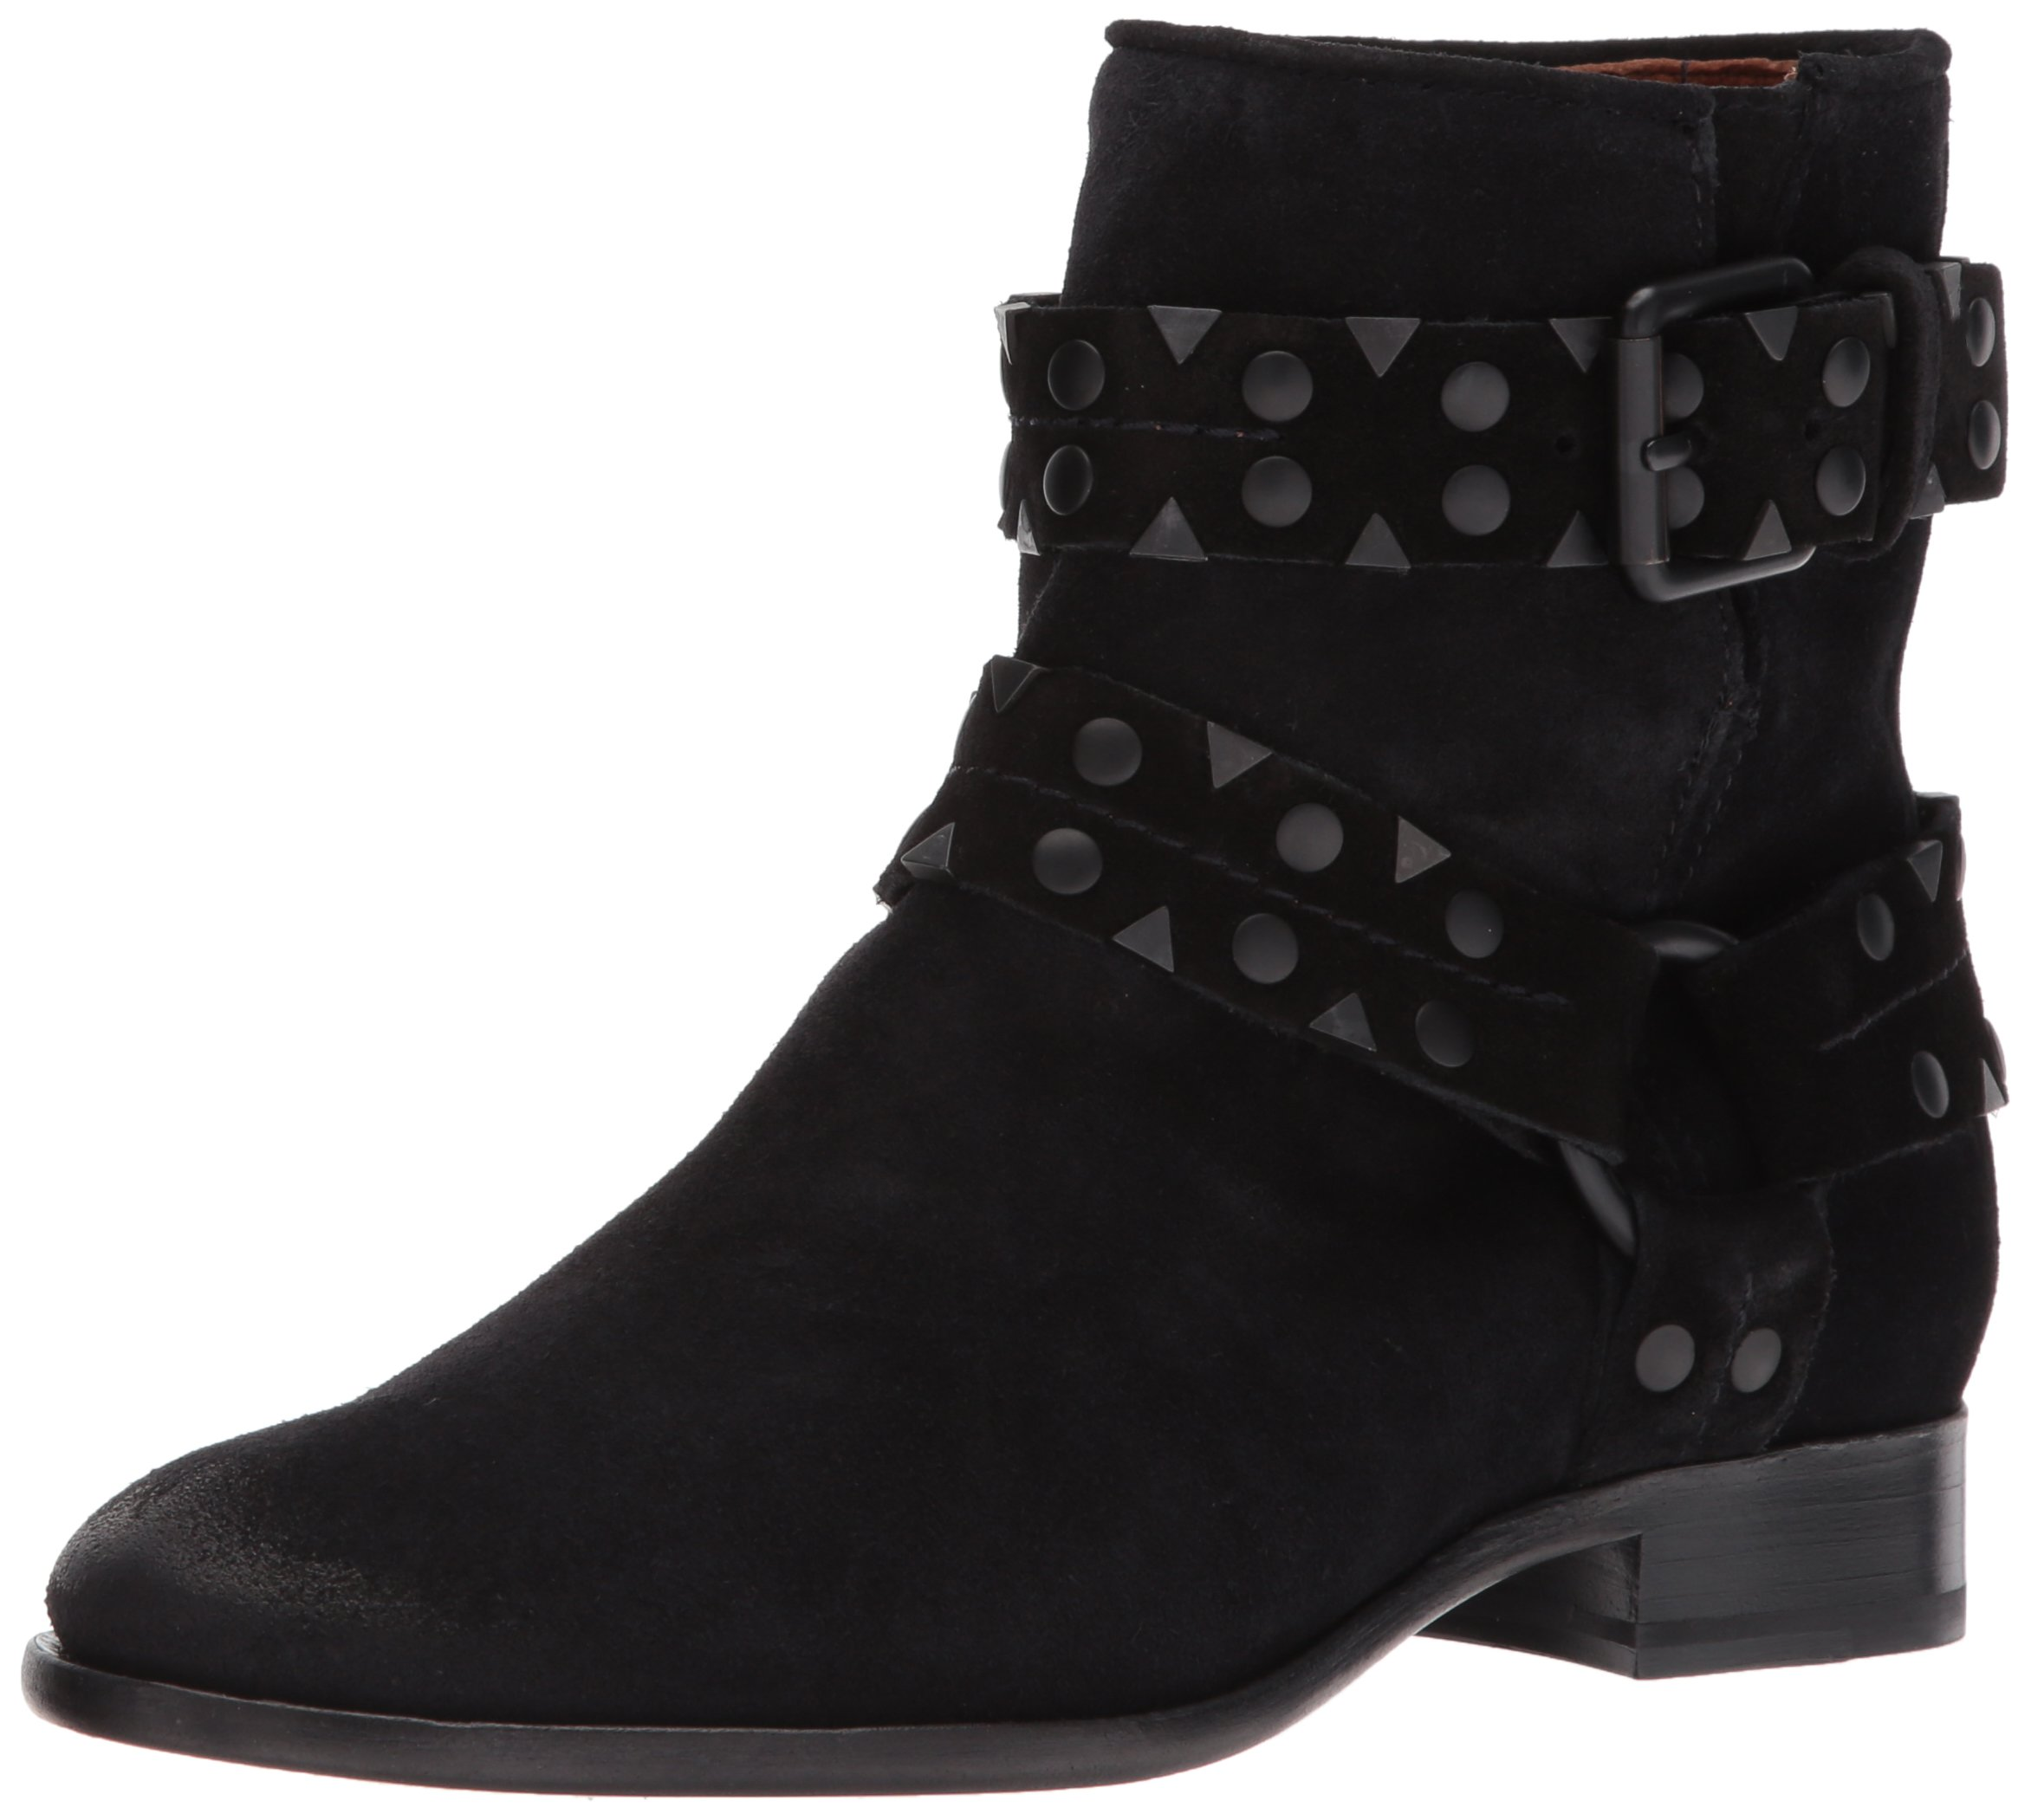 FRYE Women's Carly Stud Short Engineer Boot, Black, 6.5 M US